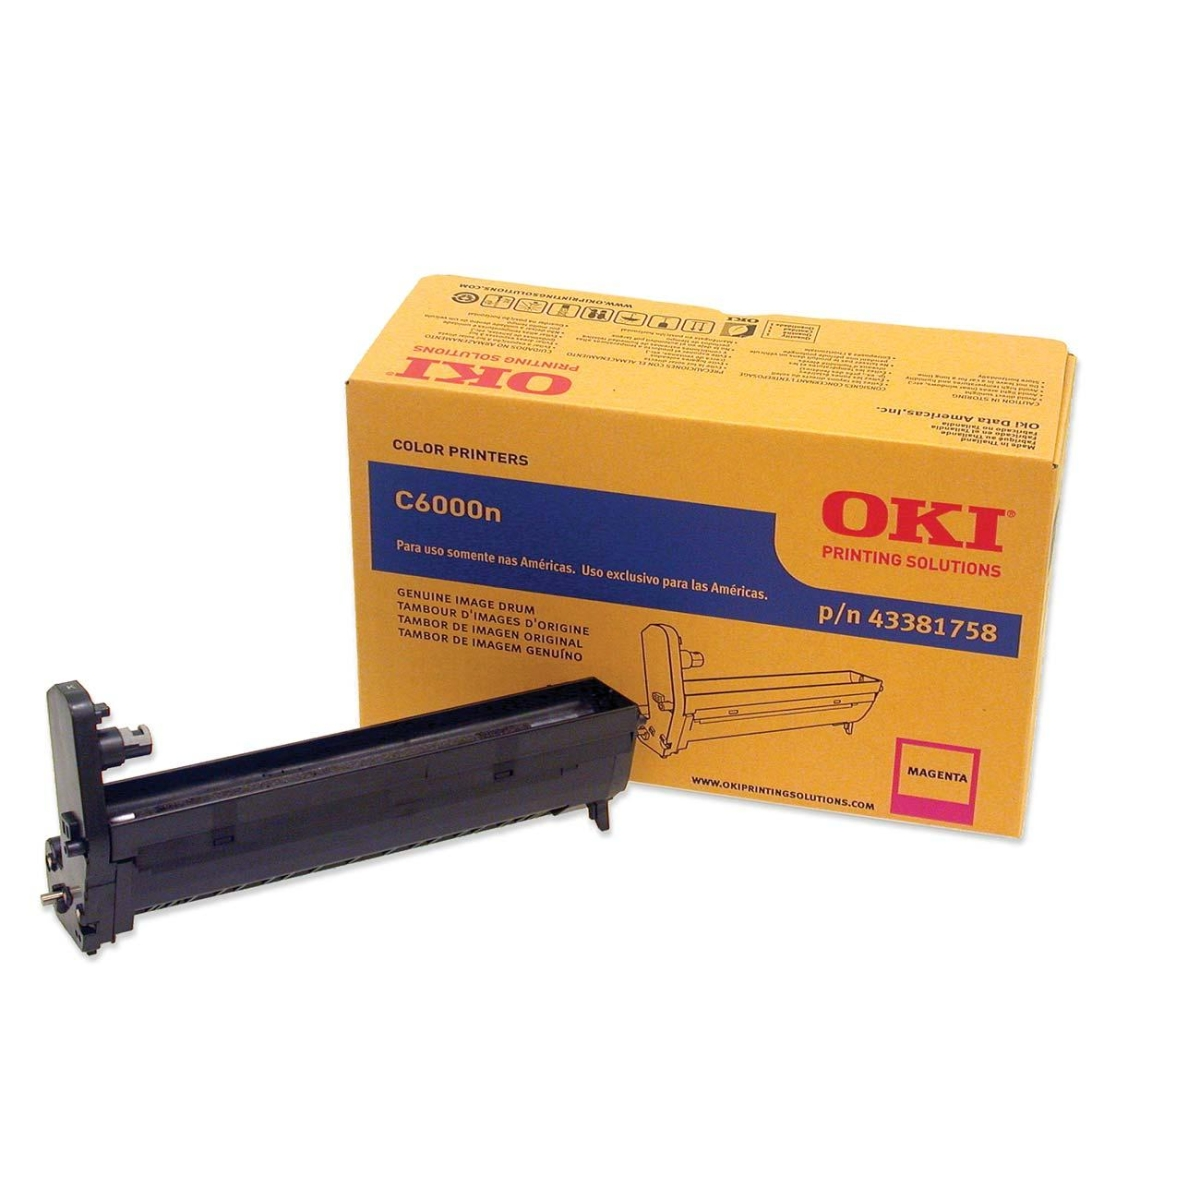 Oki Magenta Image Drum For C6000n and C6000dn Printers - 20000 Page - 1 Pack